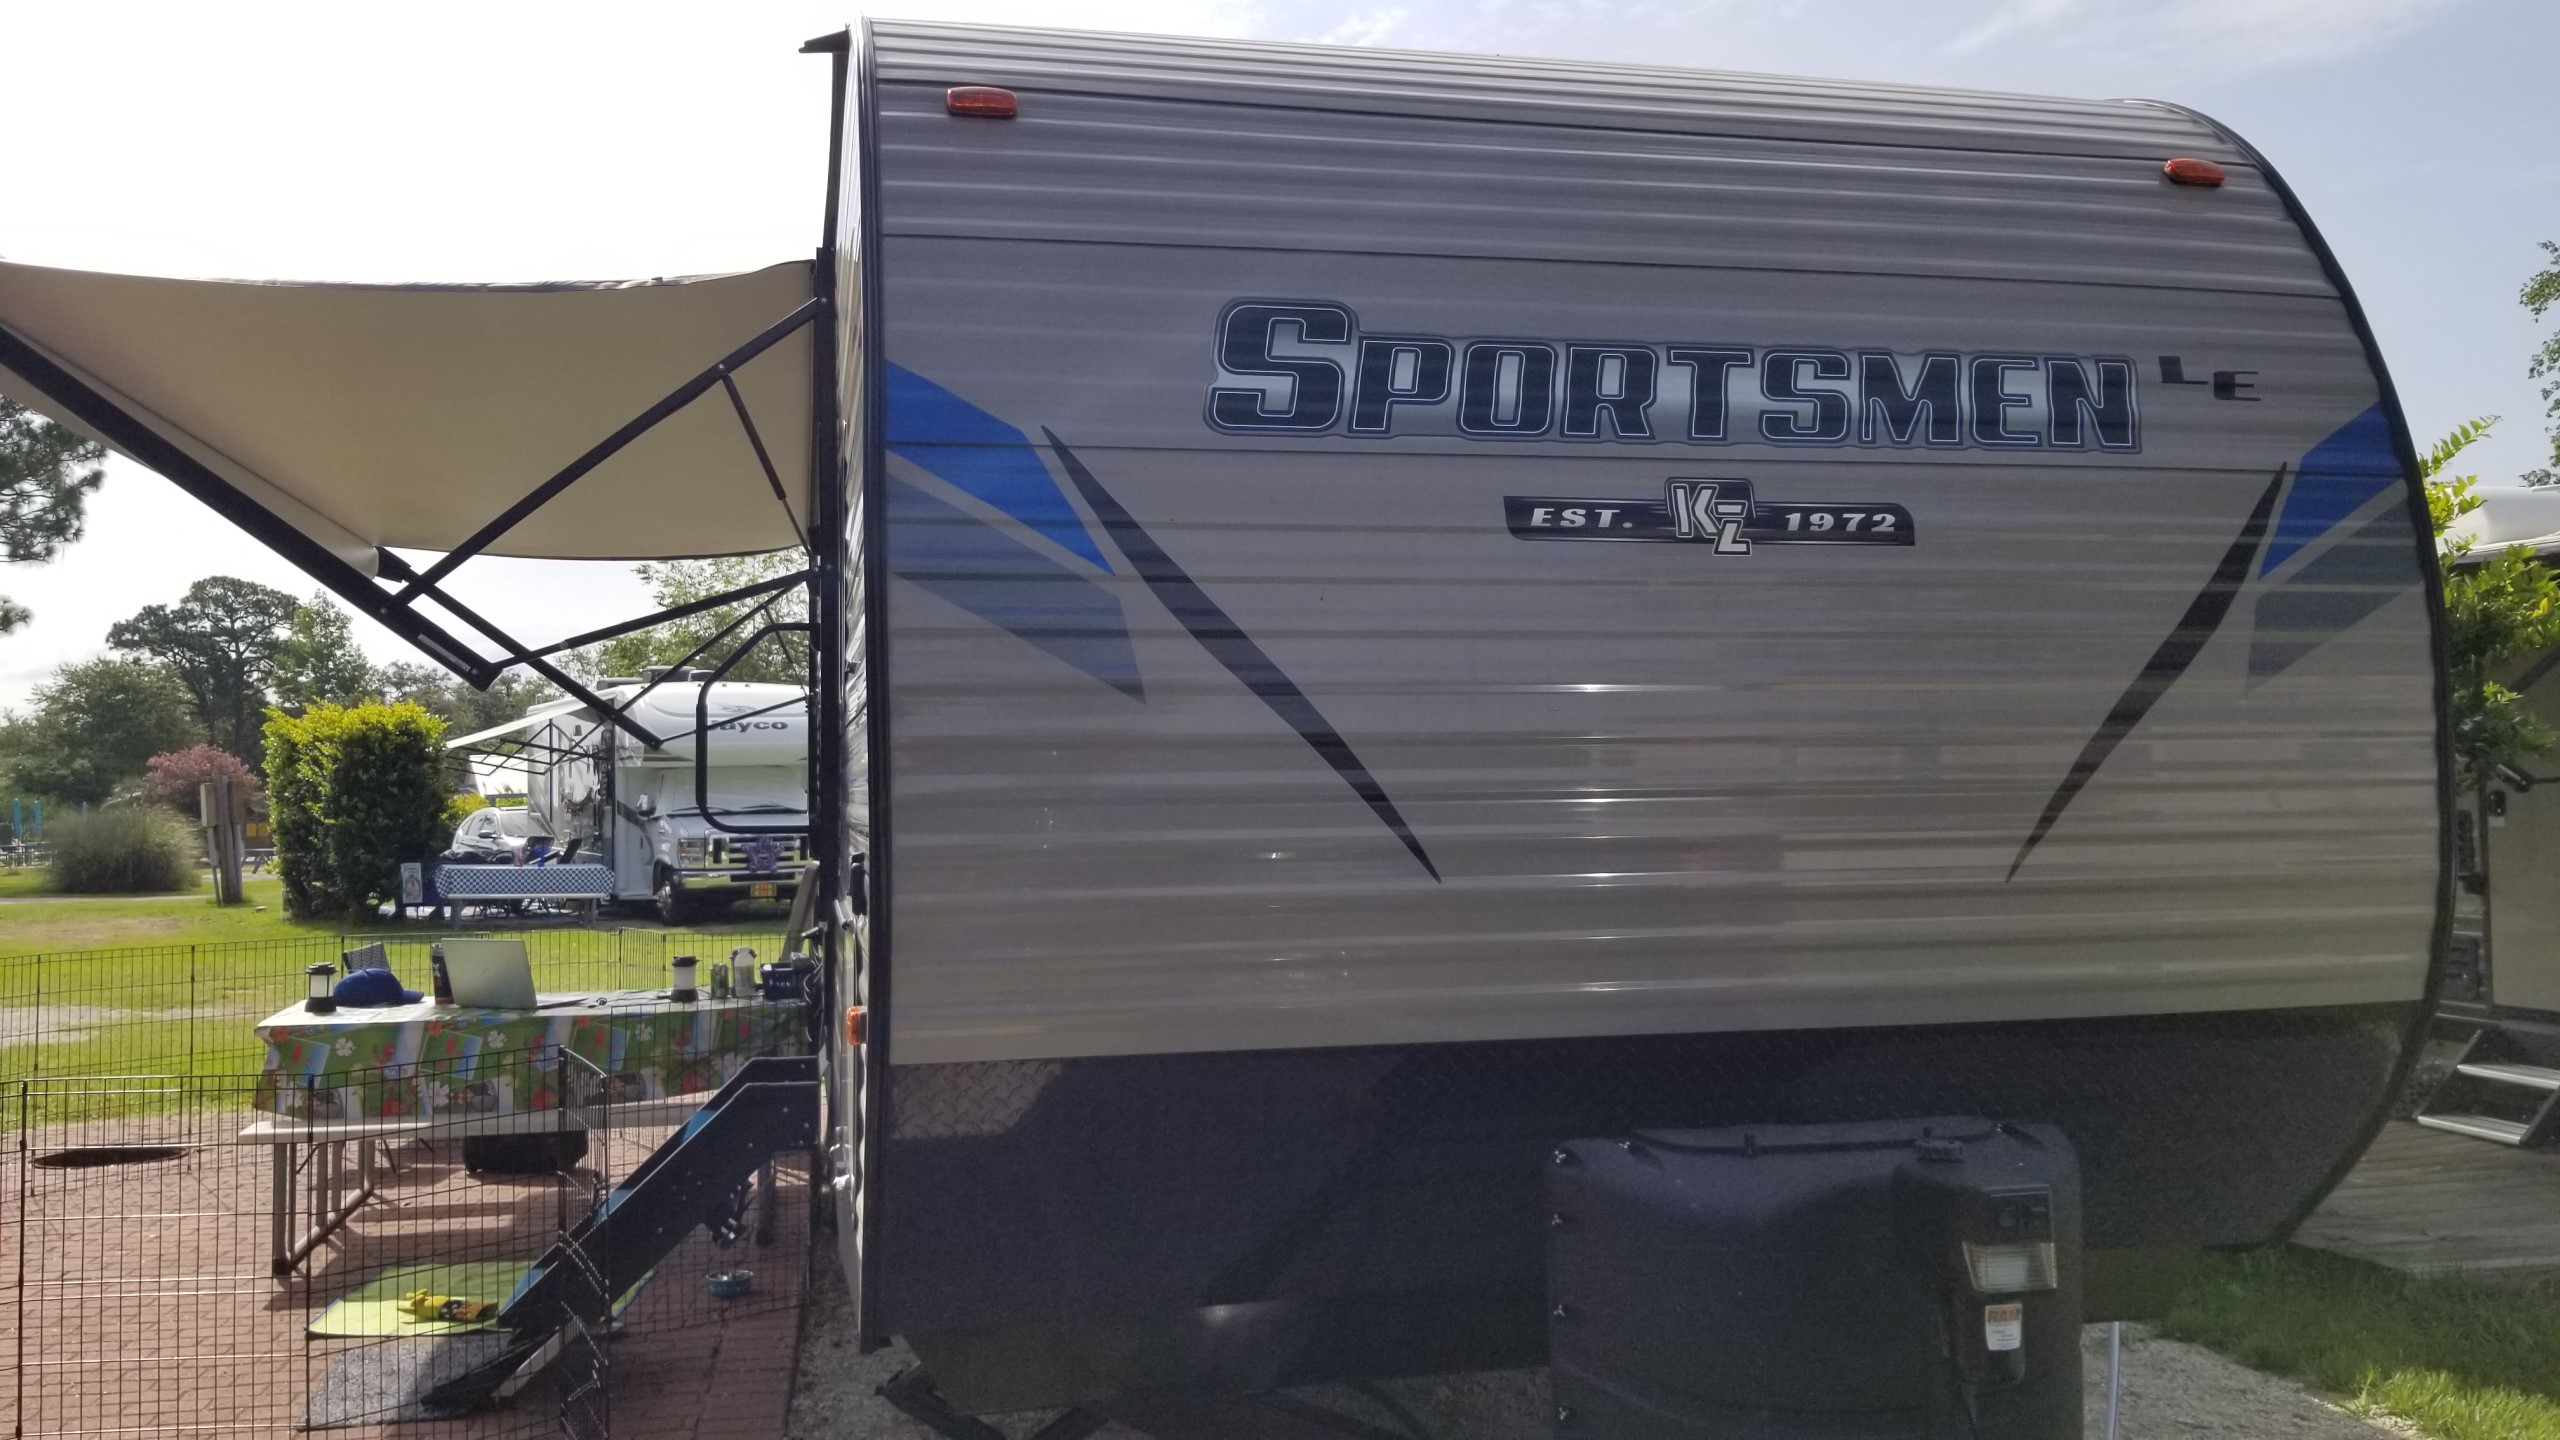 The Travel Trailer